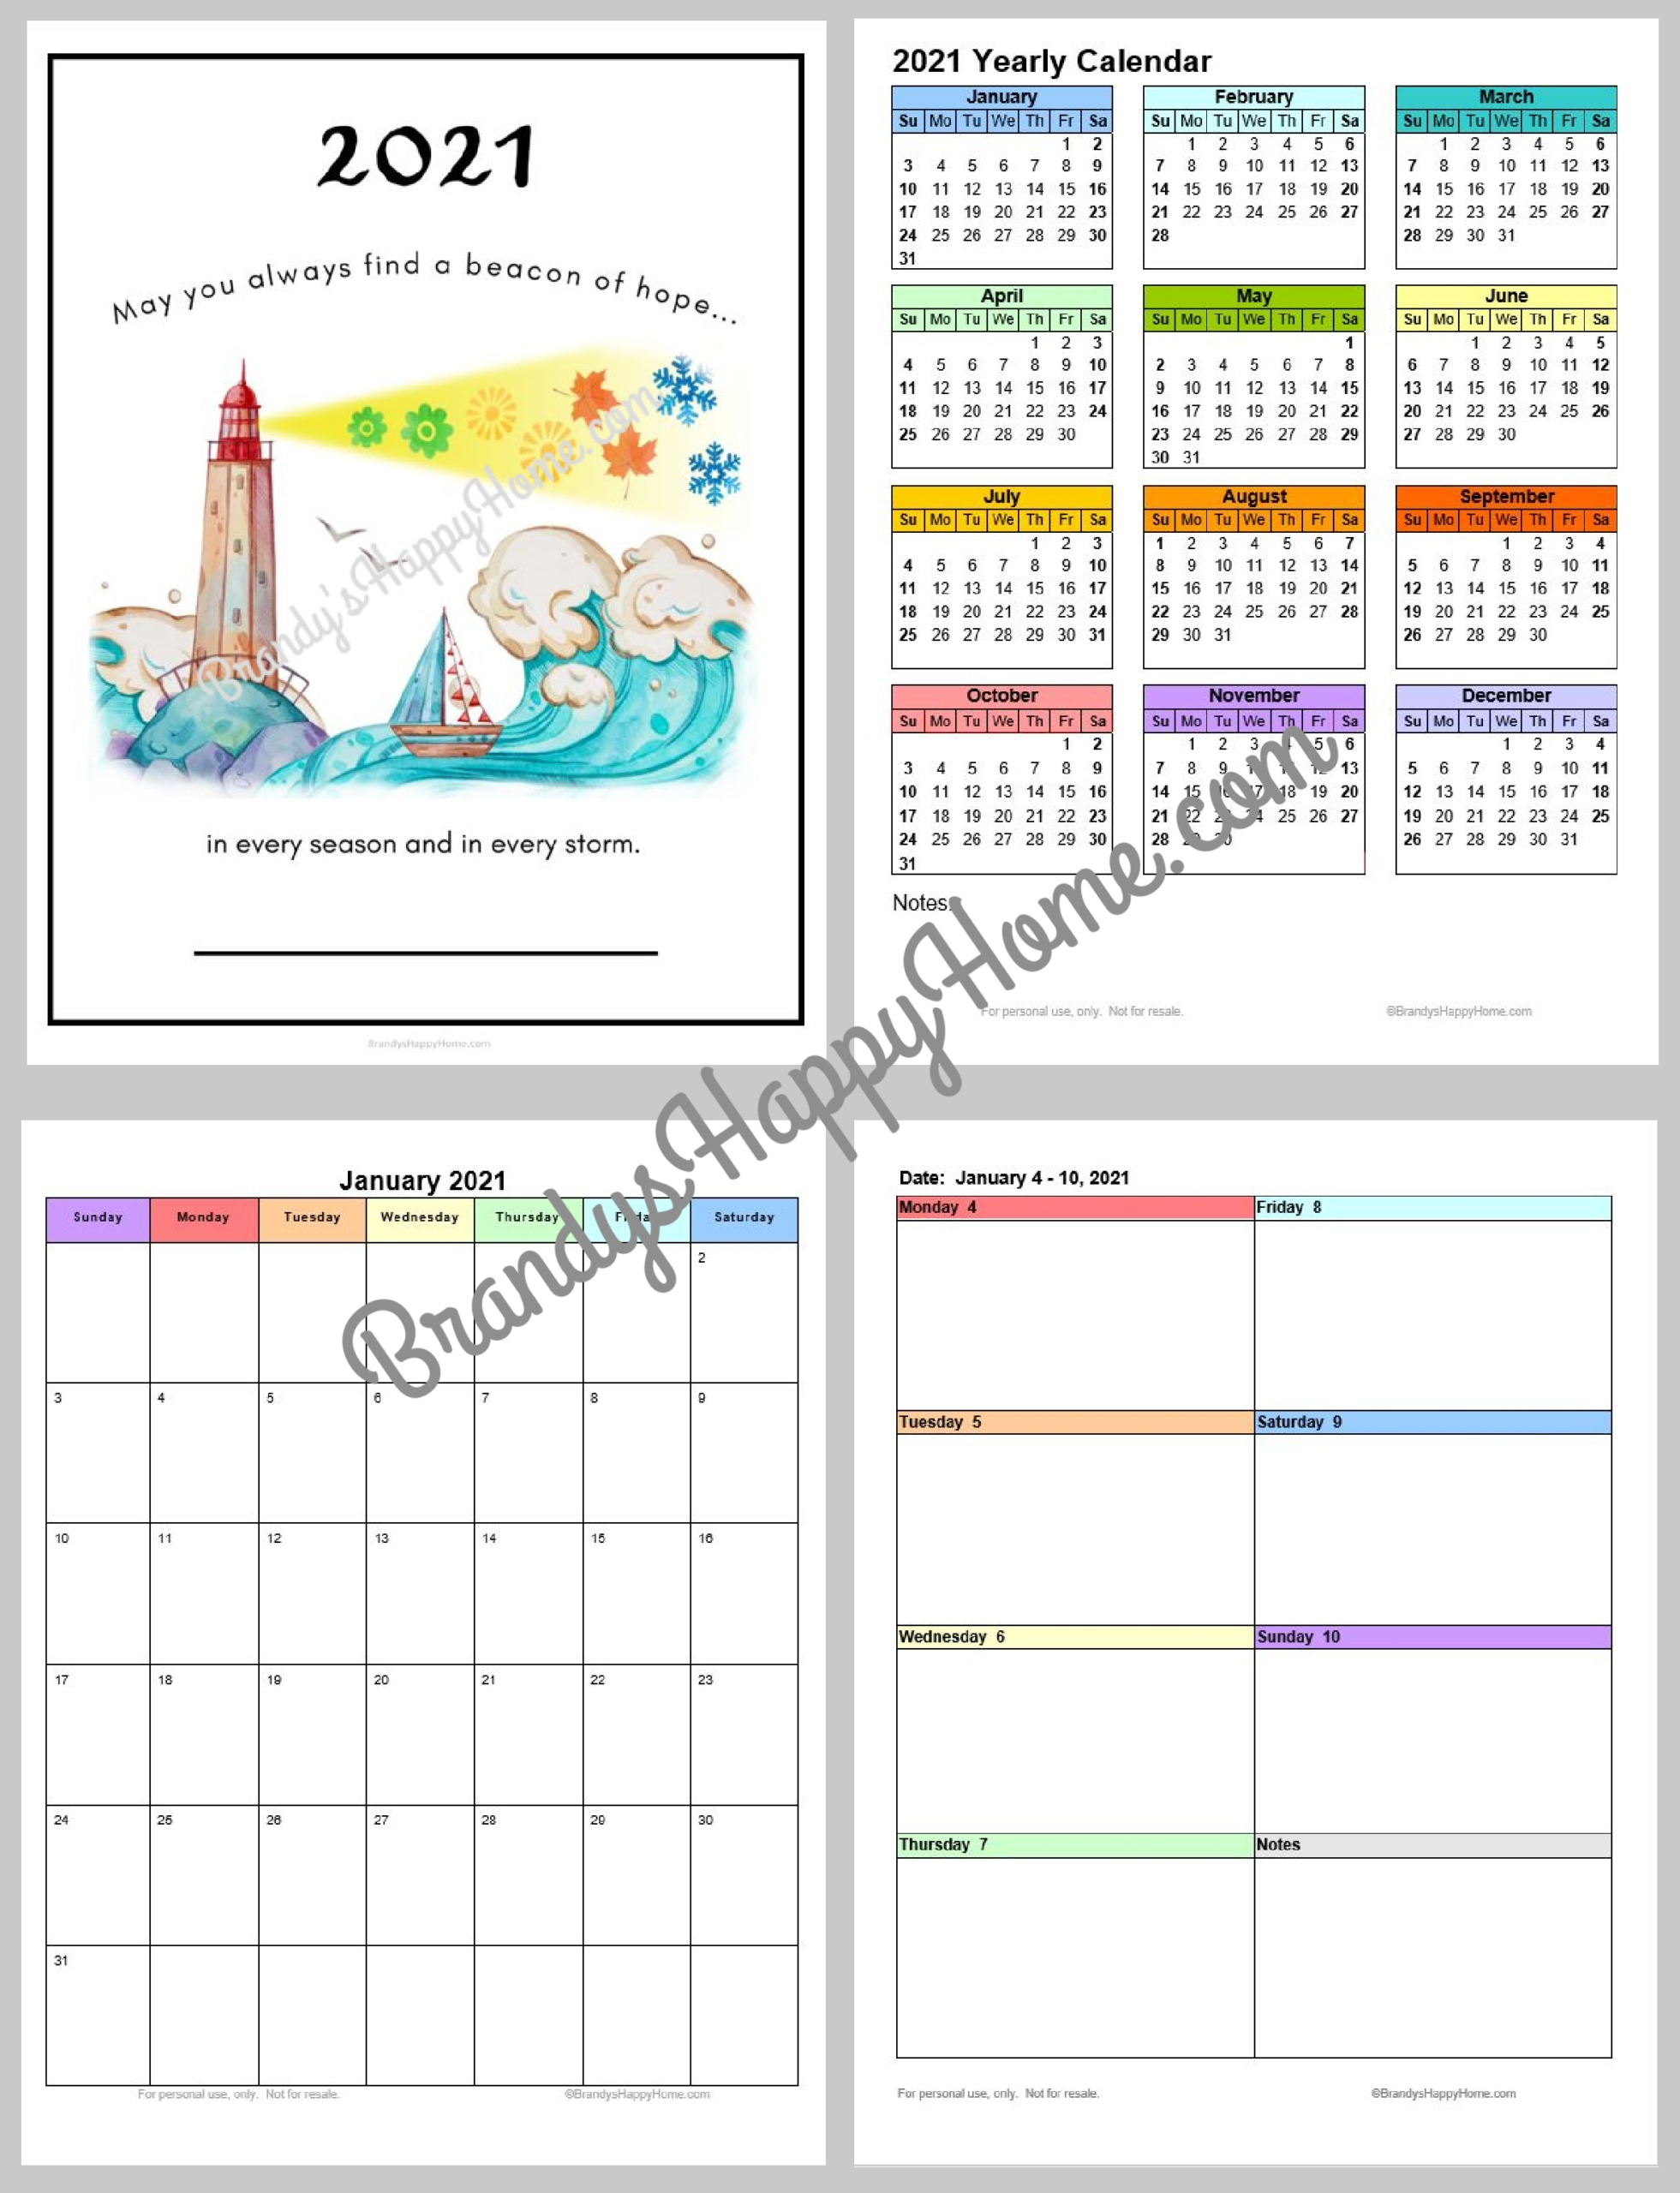 Free Printable 2 Month Calendar 2021   Example Calendar Printable intended for Calendar Templates 3 Months Per Page 2021 Graphics